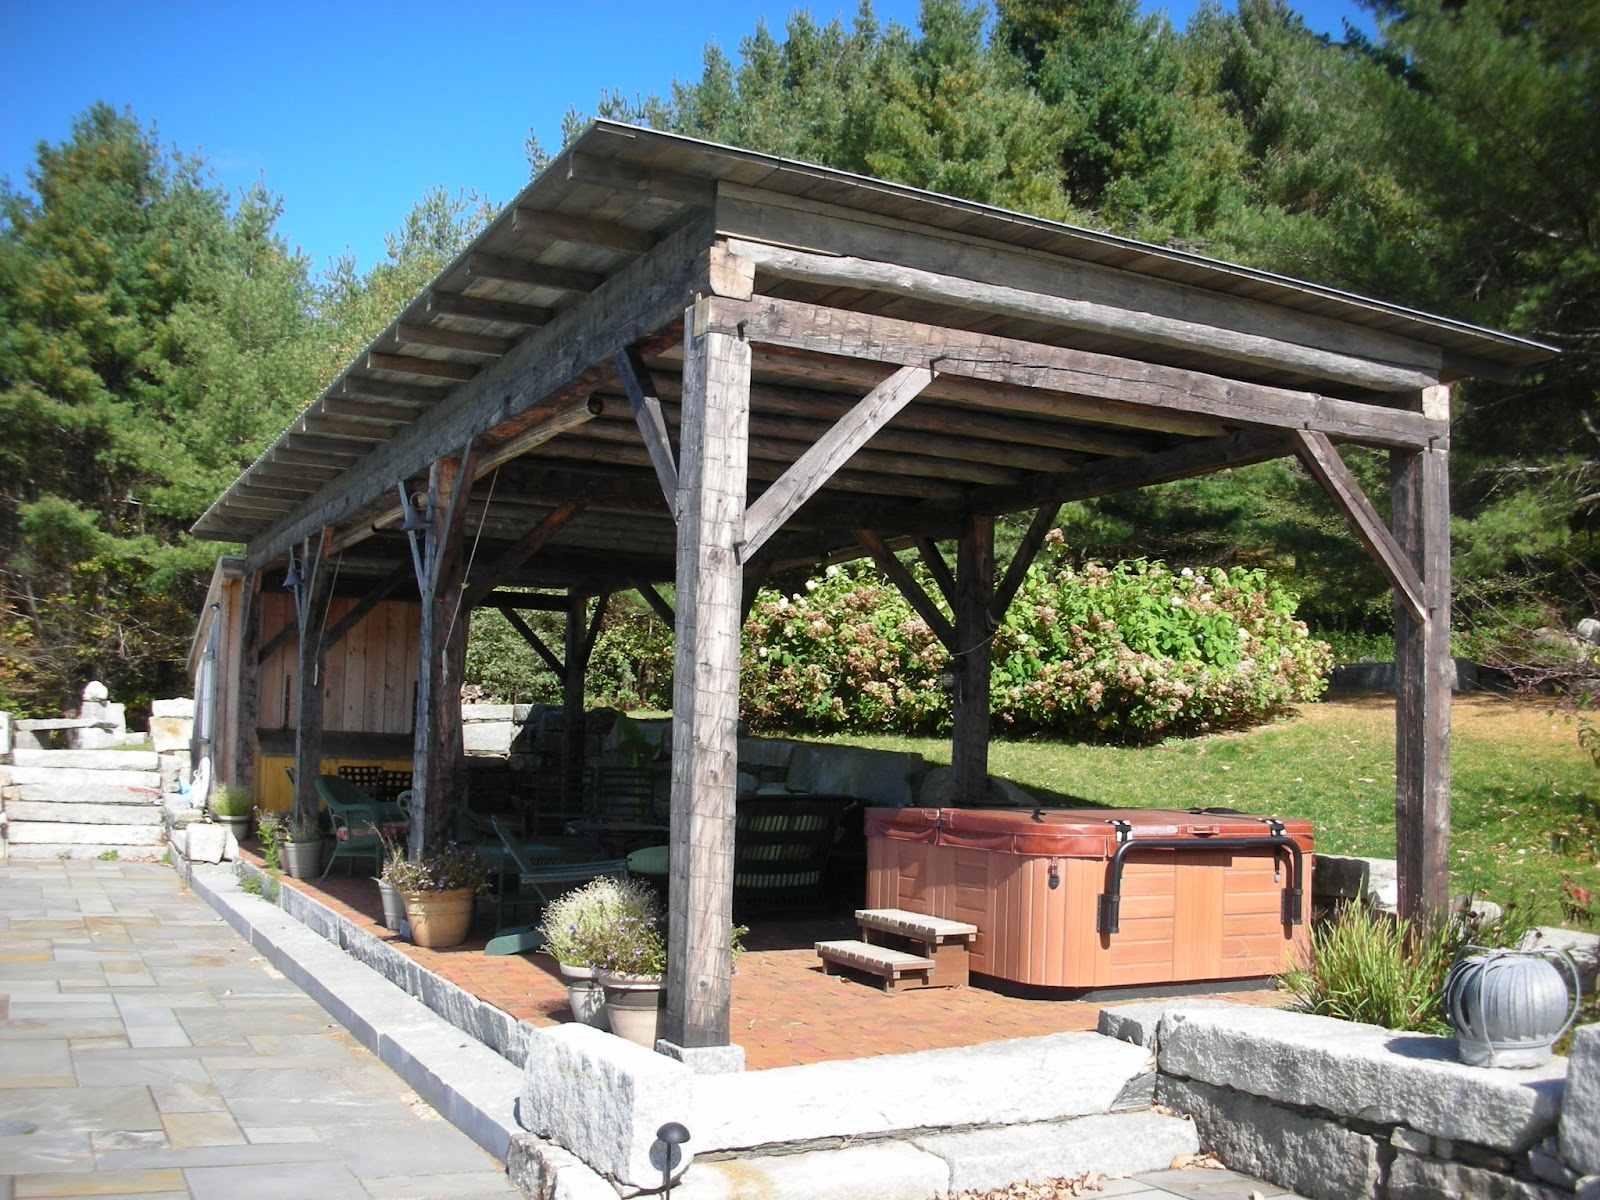 After a few years of exposing the pergola to the elements, the owners had a roof put on to protect the frame.